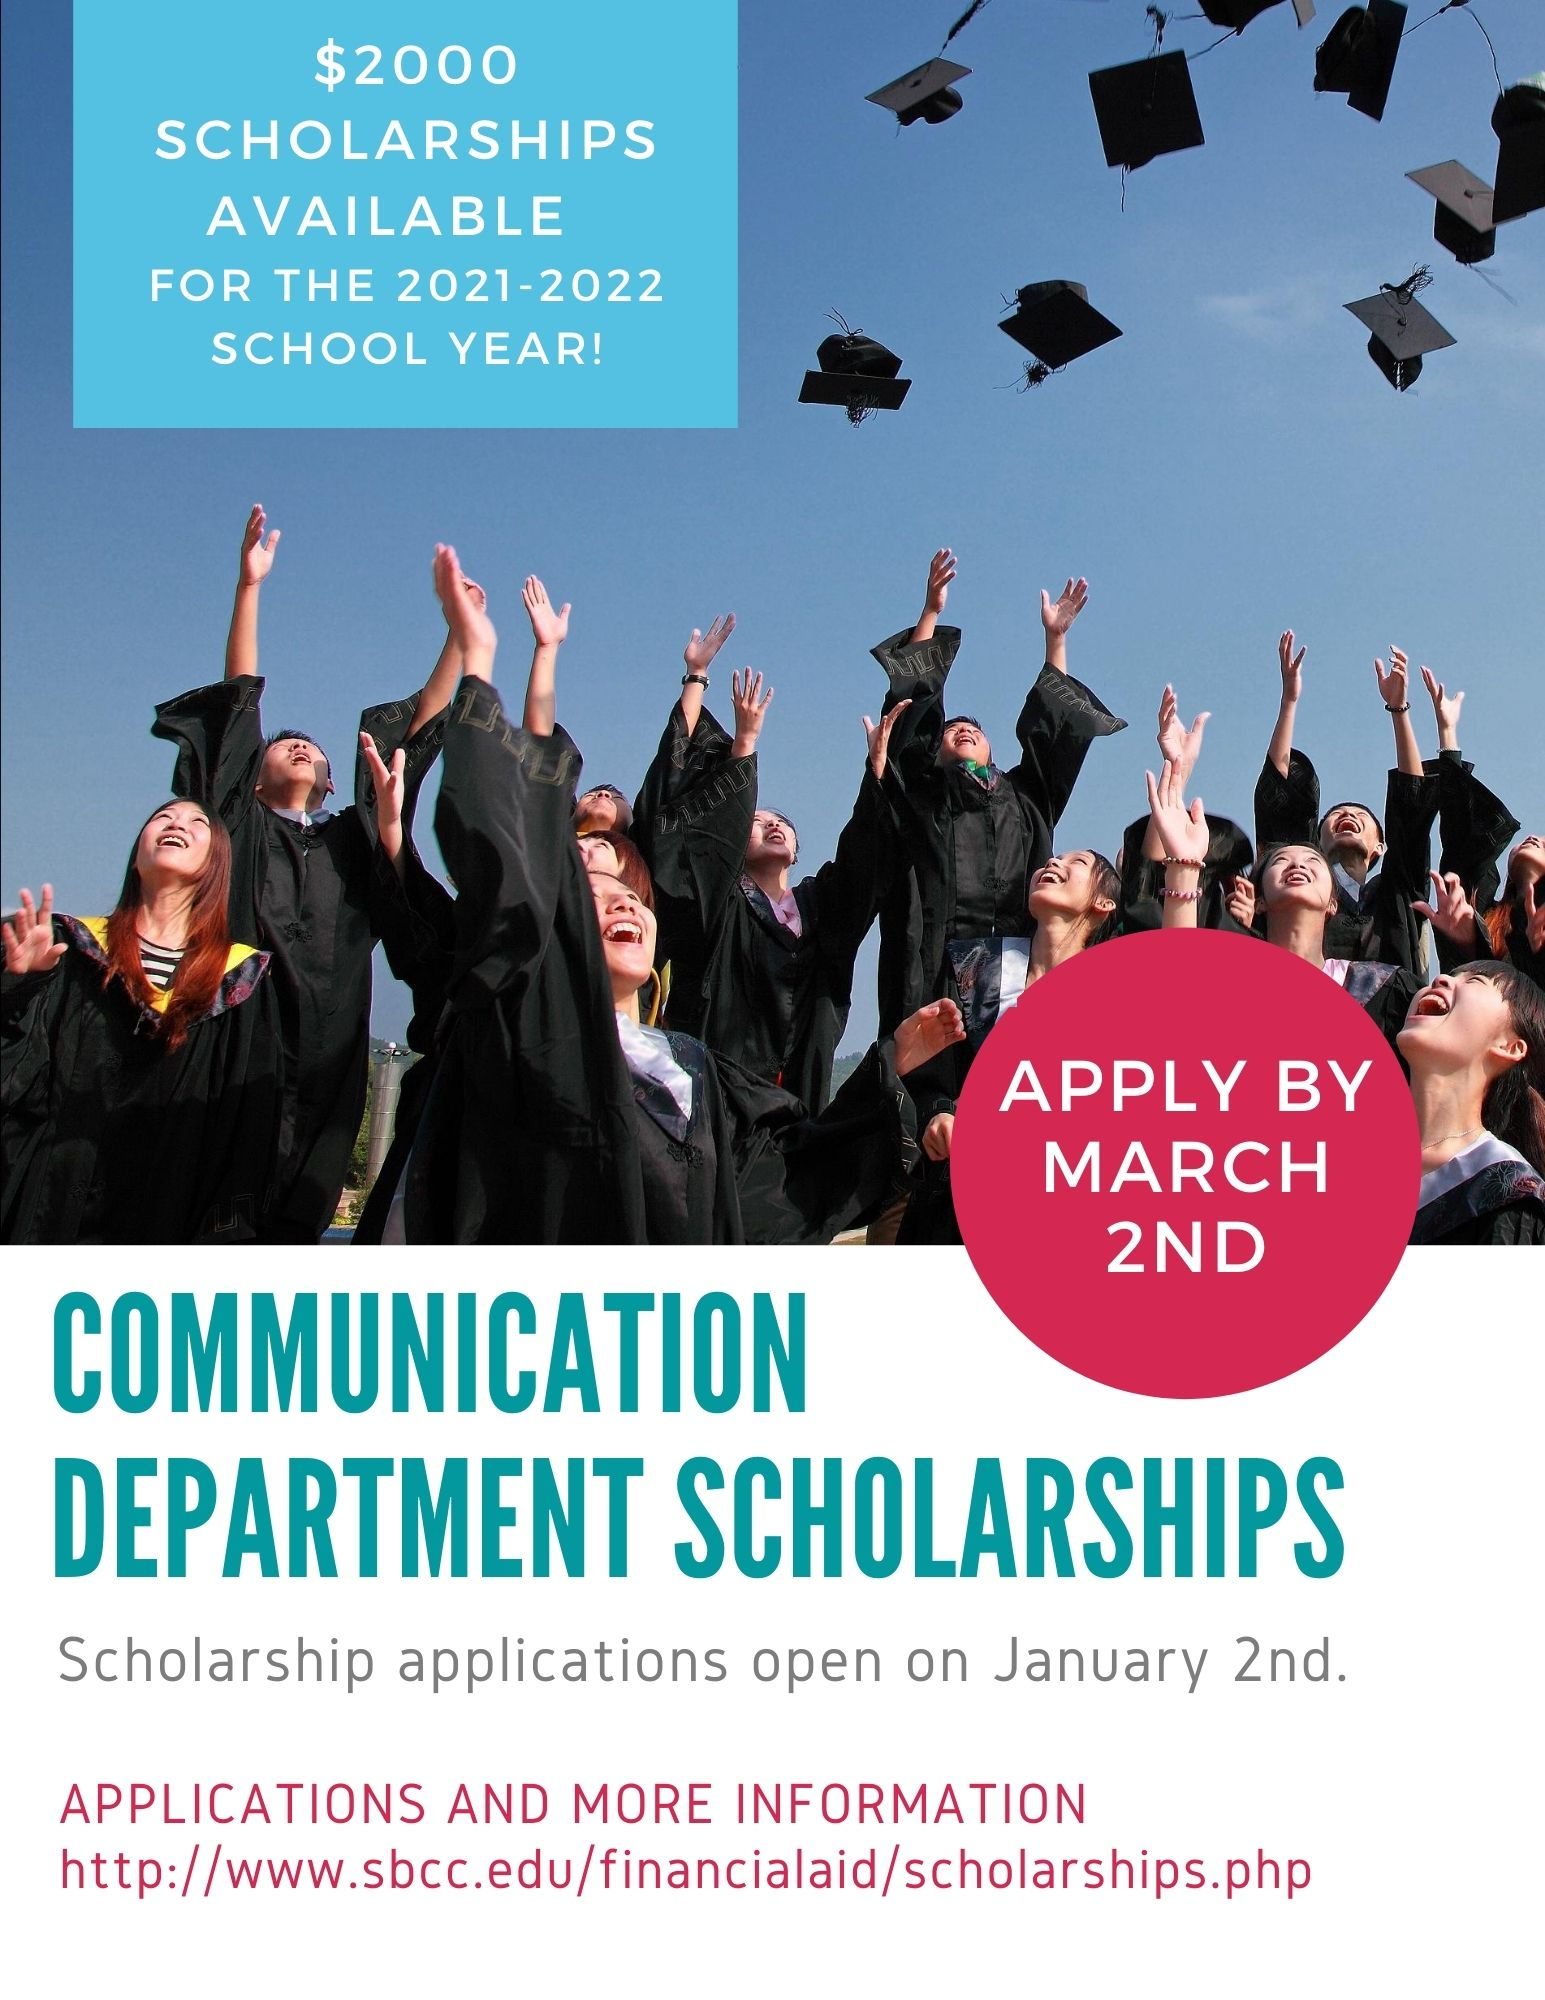 Communication Department Scholarships